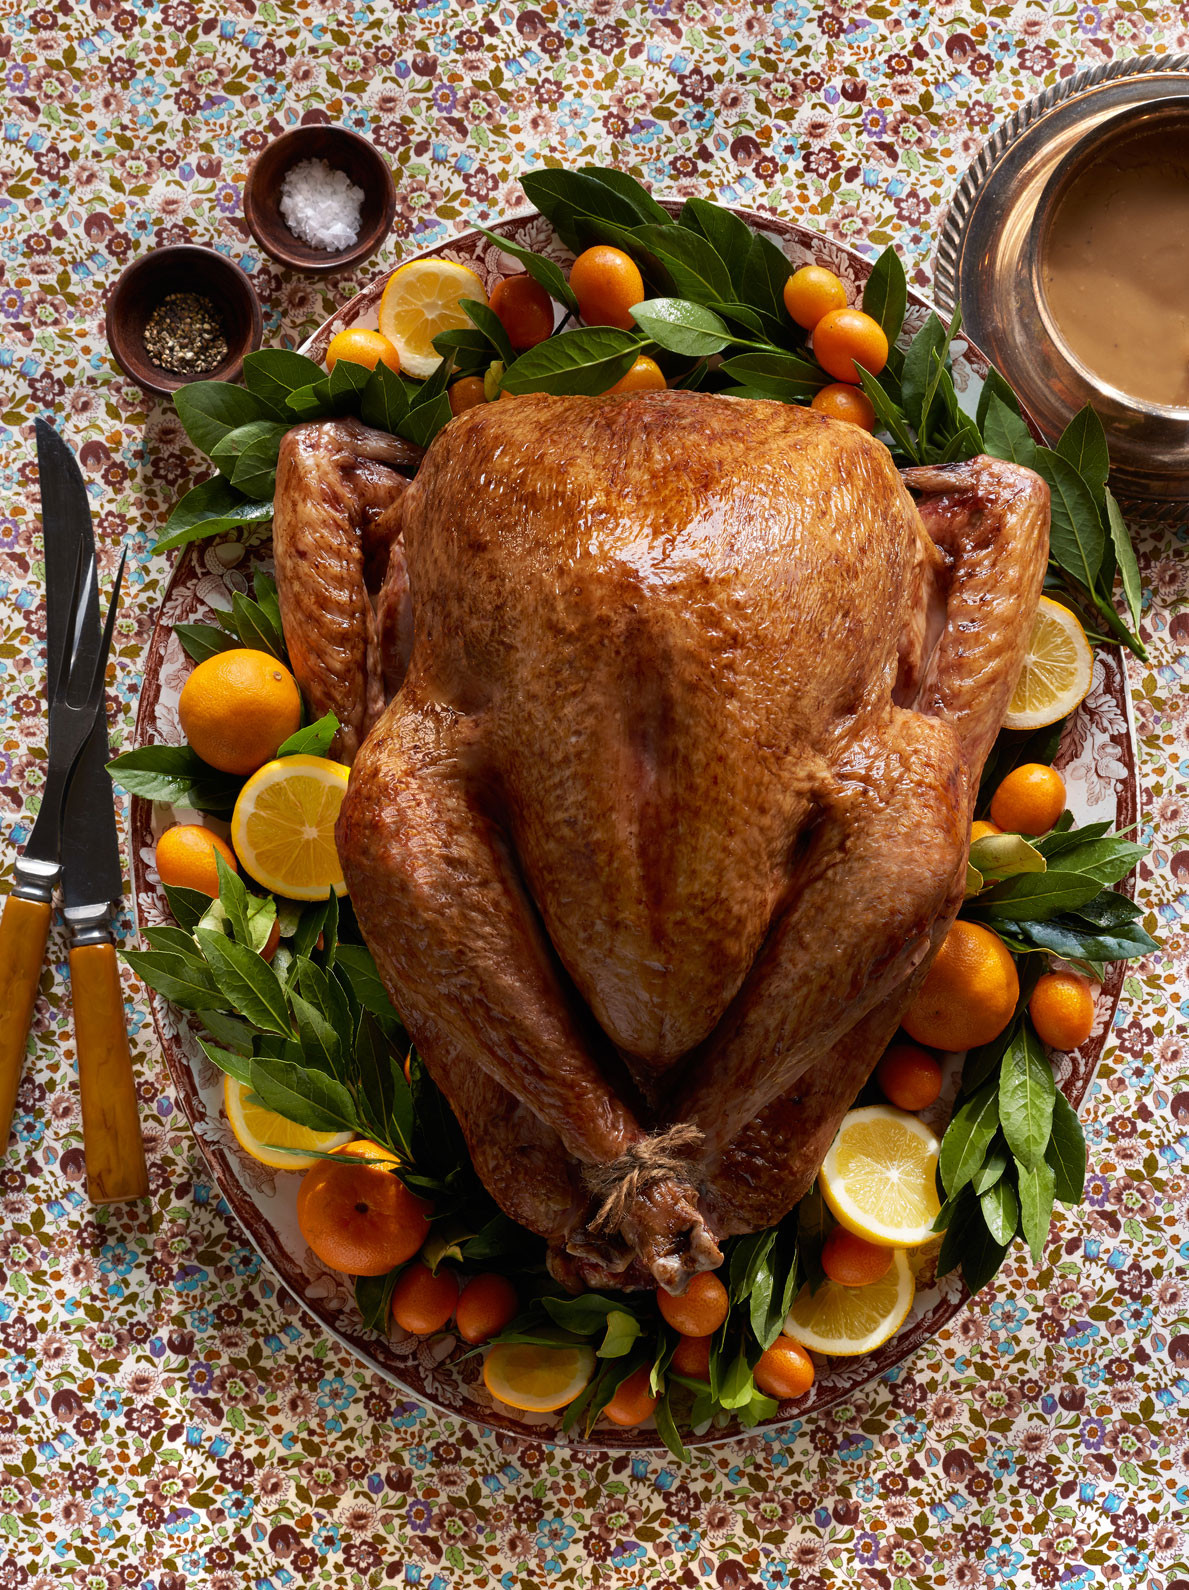 Pictures Of Turkey For Thanksgiving  25 Best Thanksgiving Turkey Recipes How To Cook Turkey